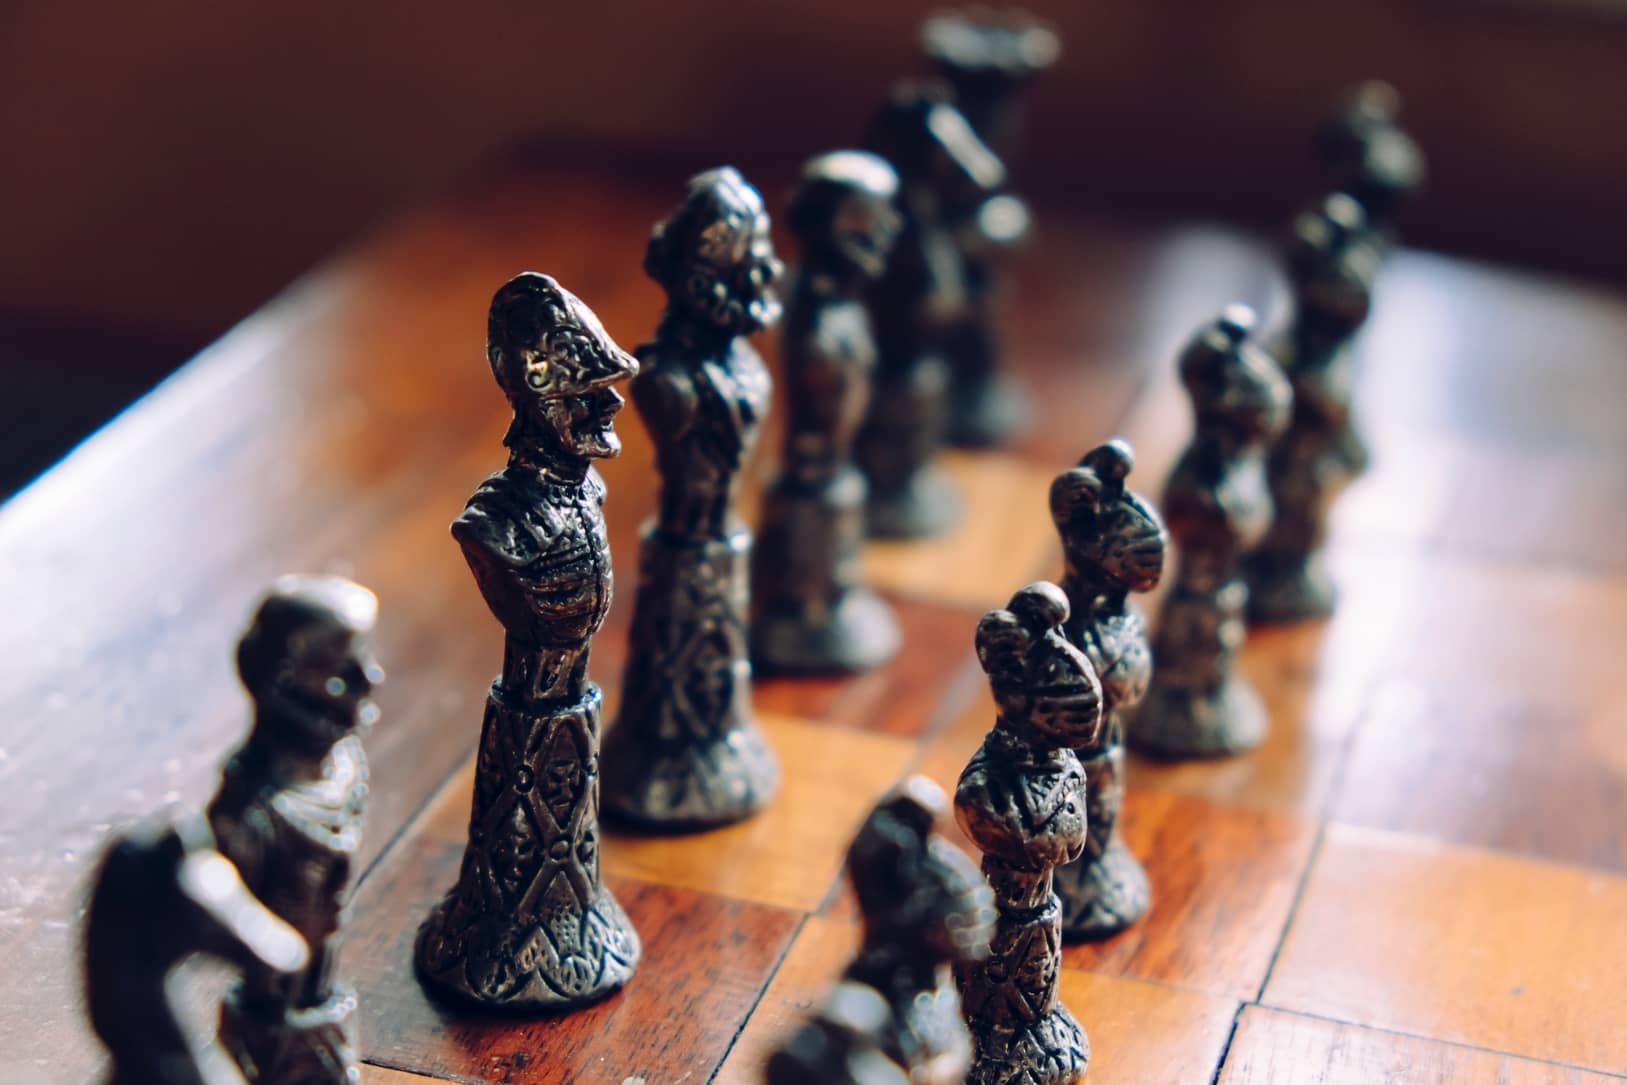 13 Insights to dig about your competitors through Competition Analysis